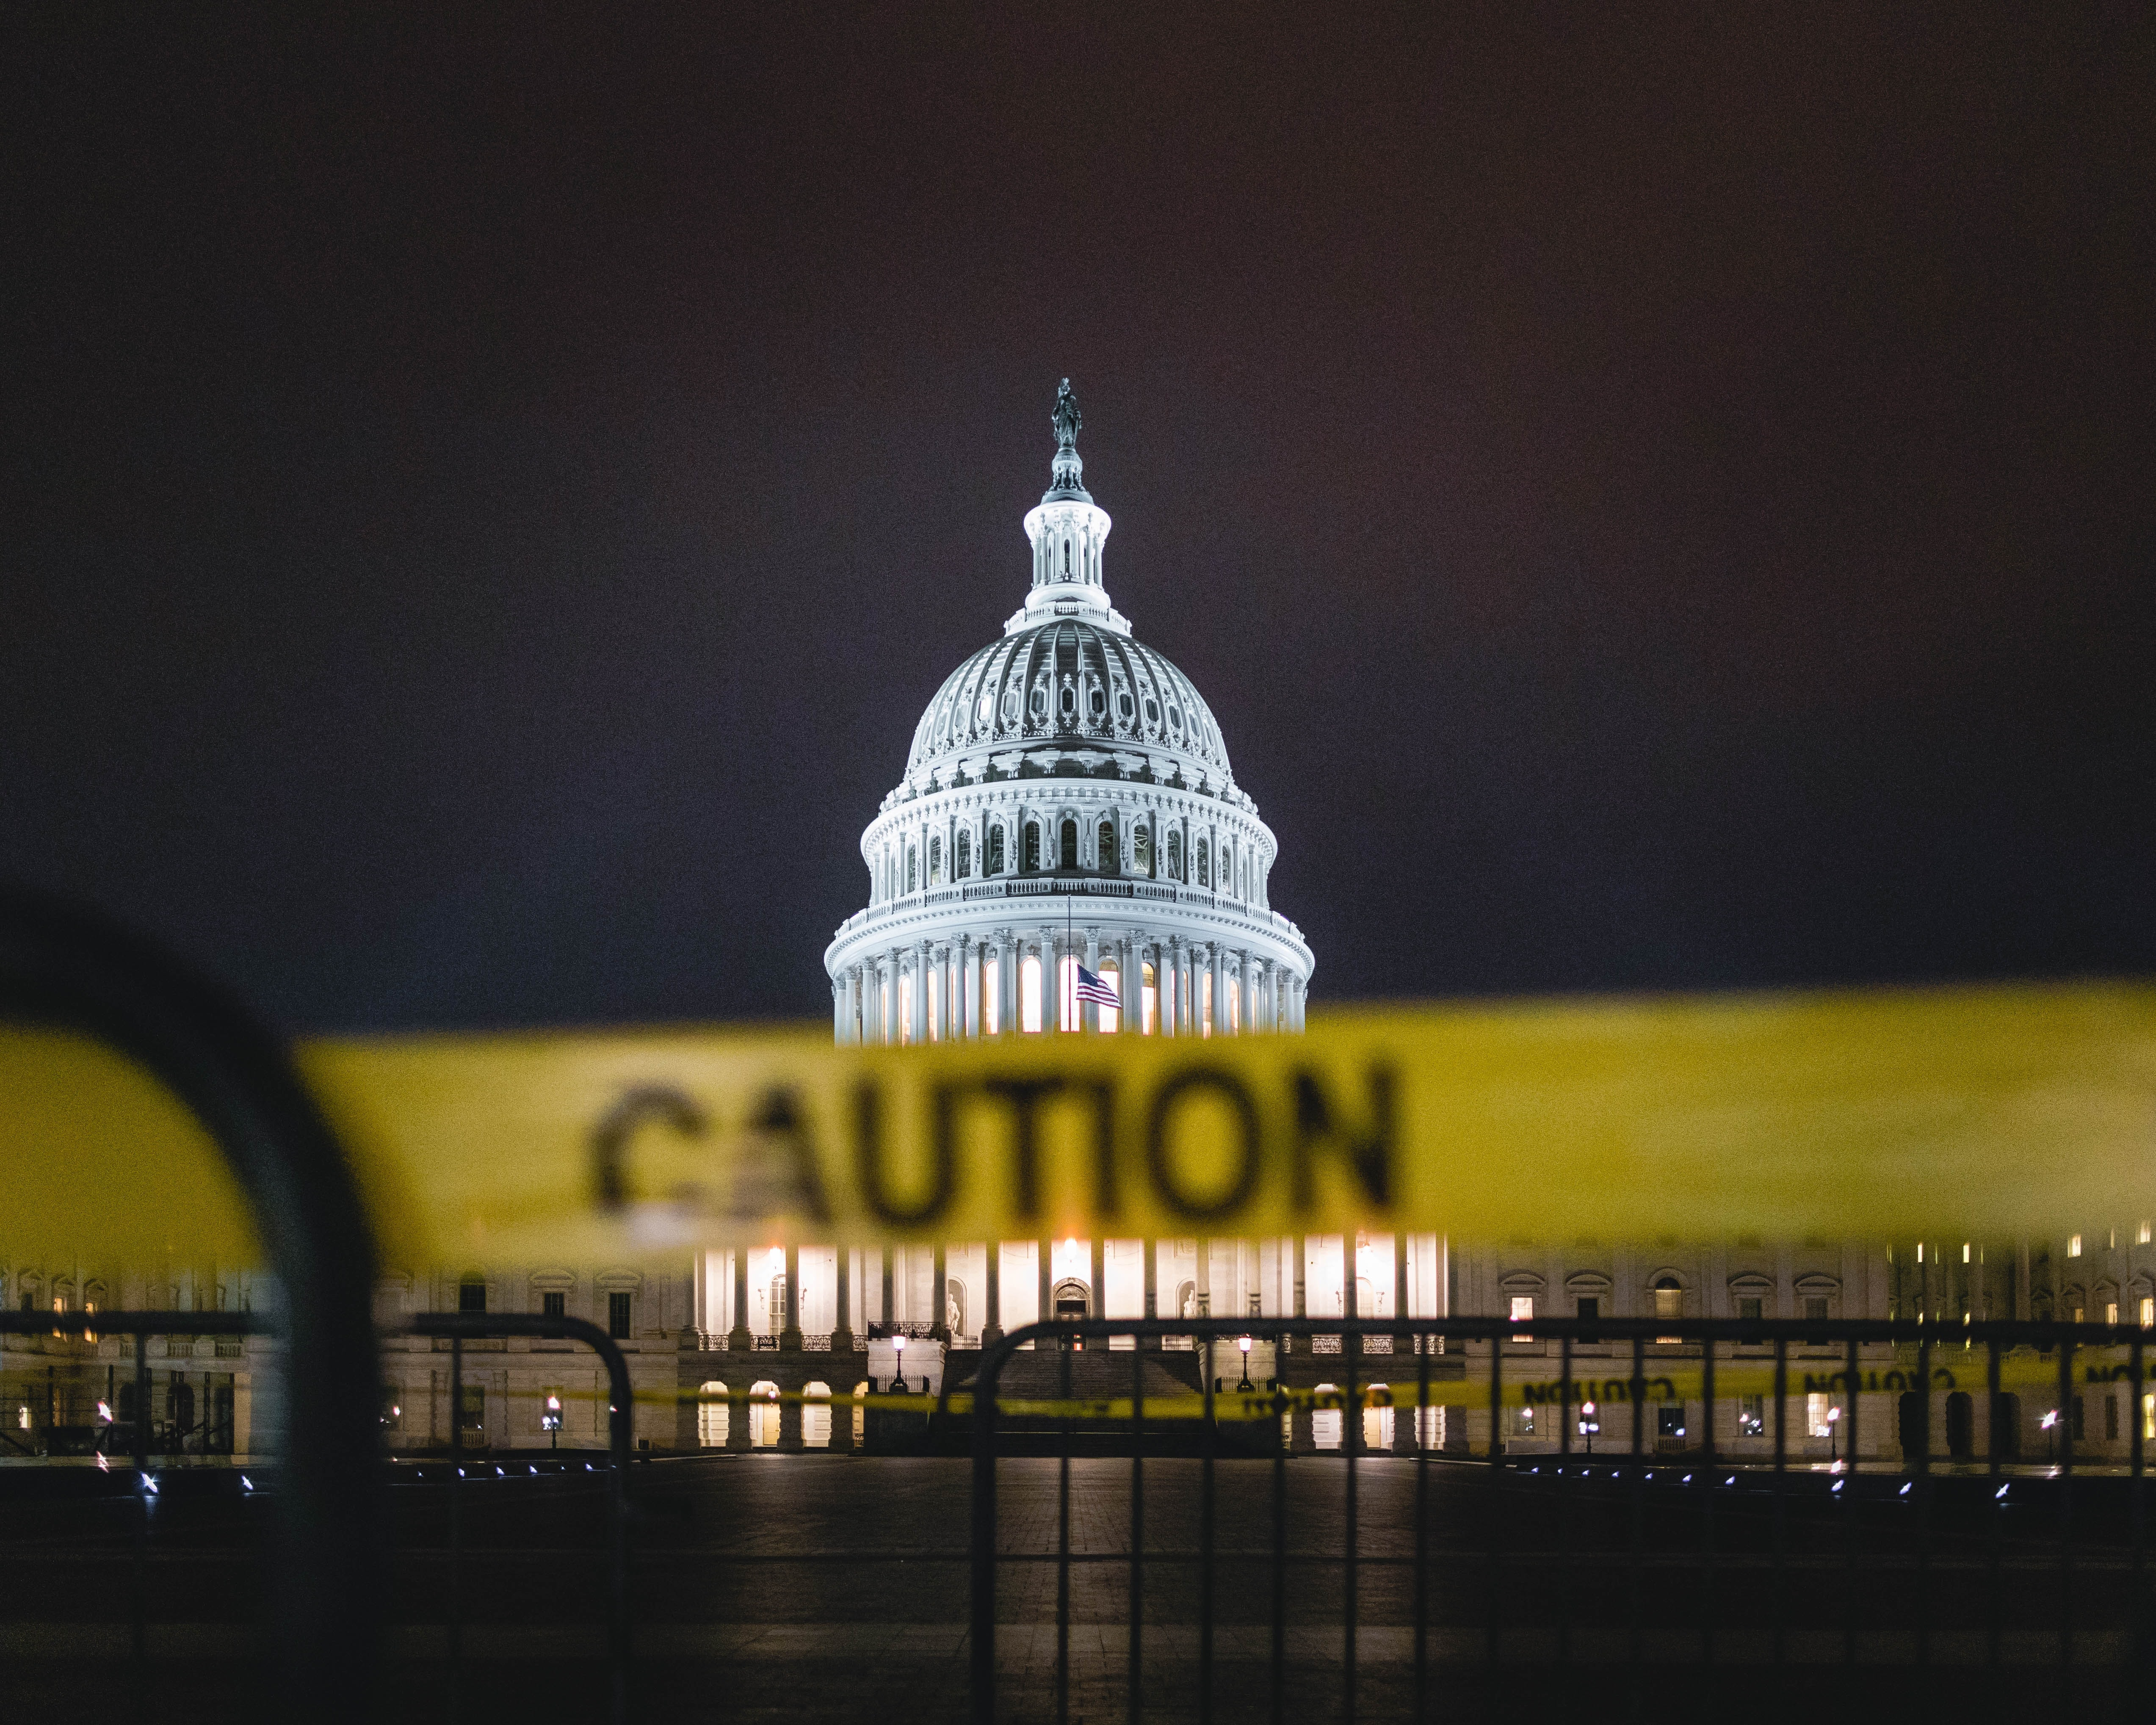 Photo of the U.S. Capitol in the background with caution tape in the foreground.